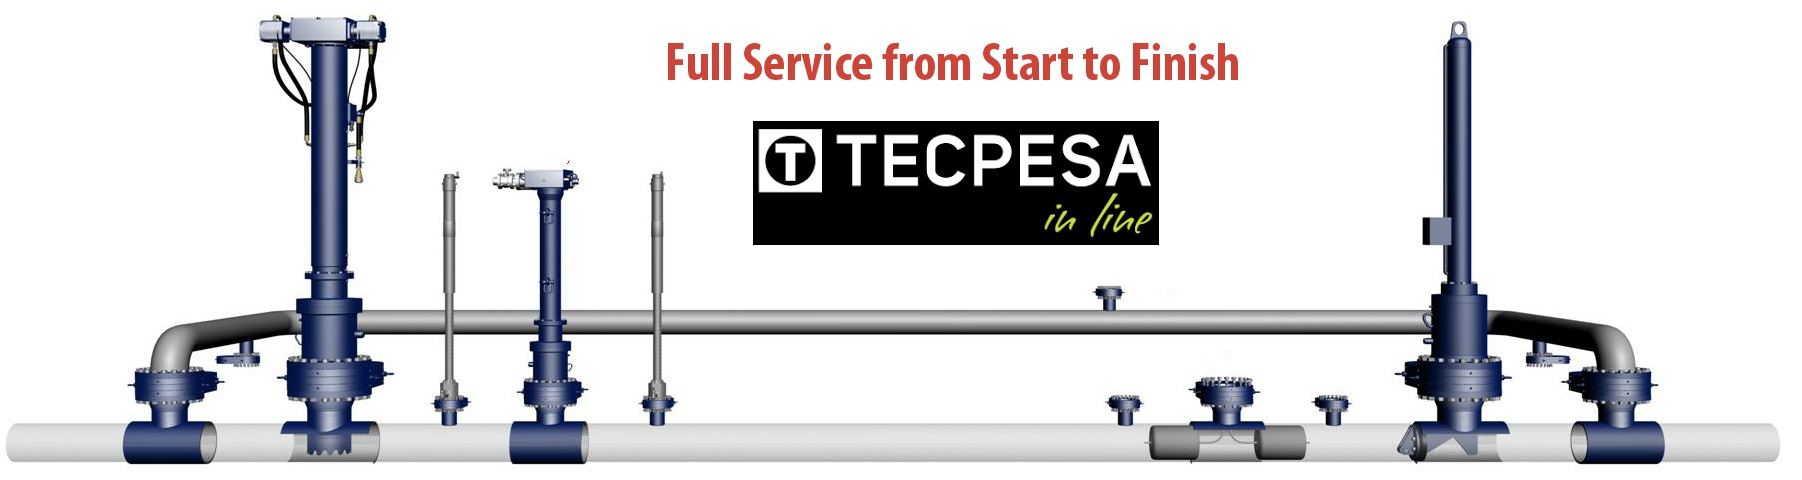 Leading Supplier of Hot Tap Fitting Solutions.